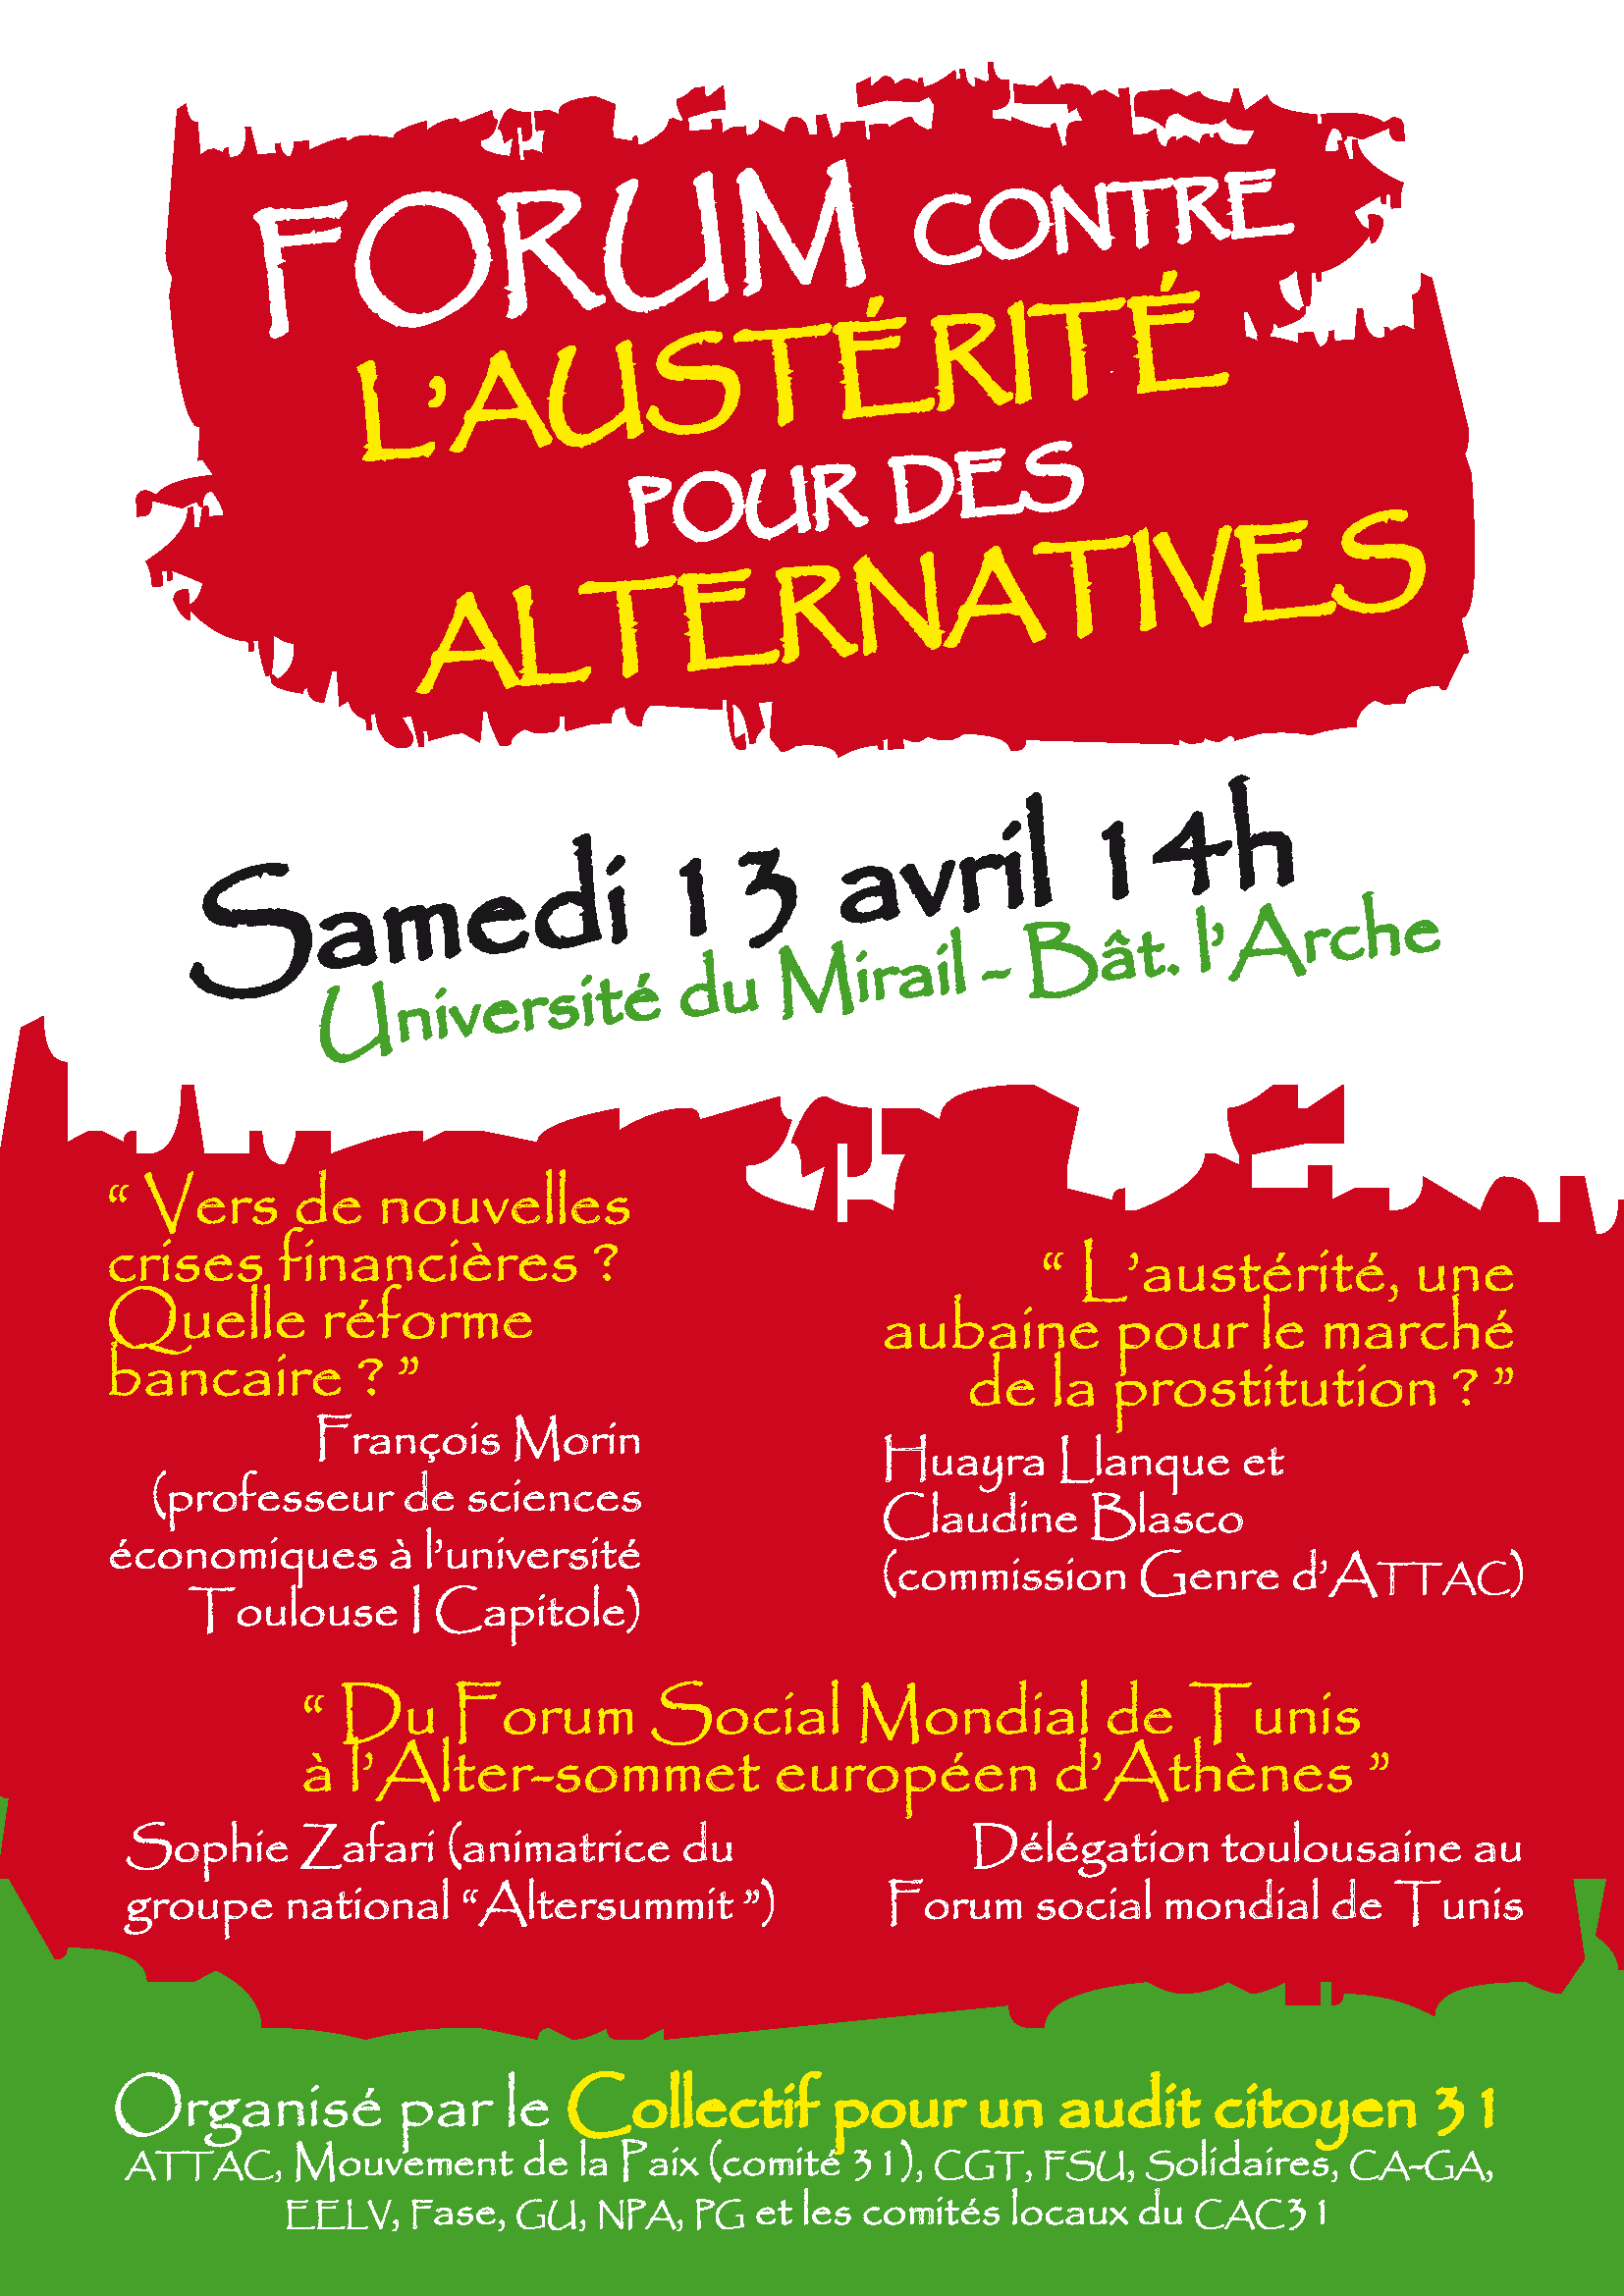 Flyer_Forum_contre_lausterite_pour_les_alternatives_avril2013Recto